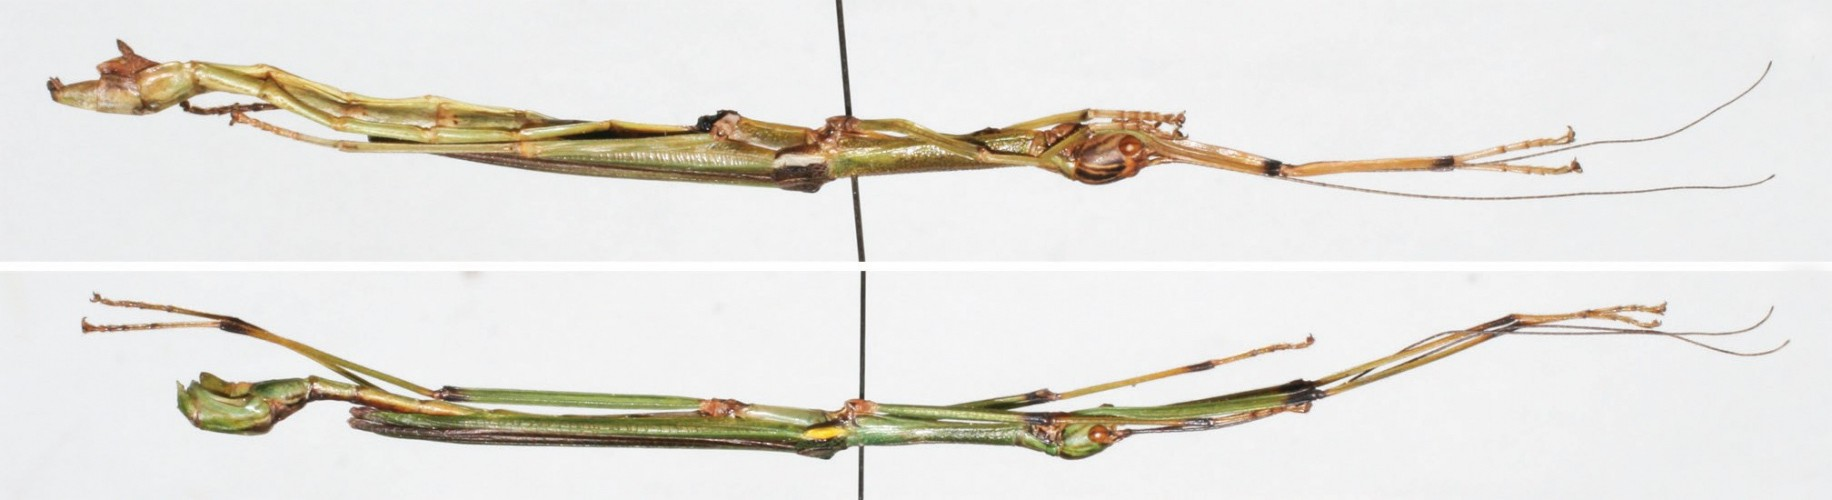 This image shows a male (top) and a female (bottom) representative of the new stick insect species Sinophasma damingshanensis.